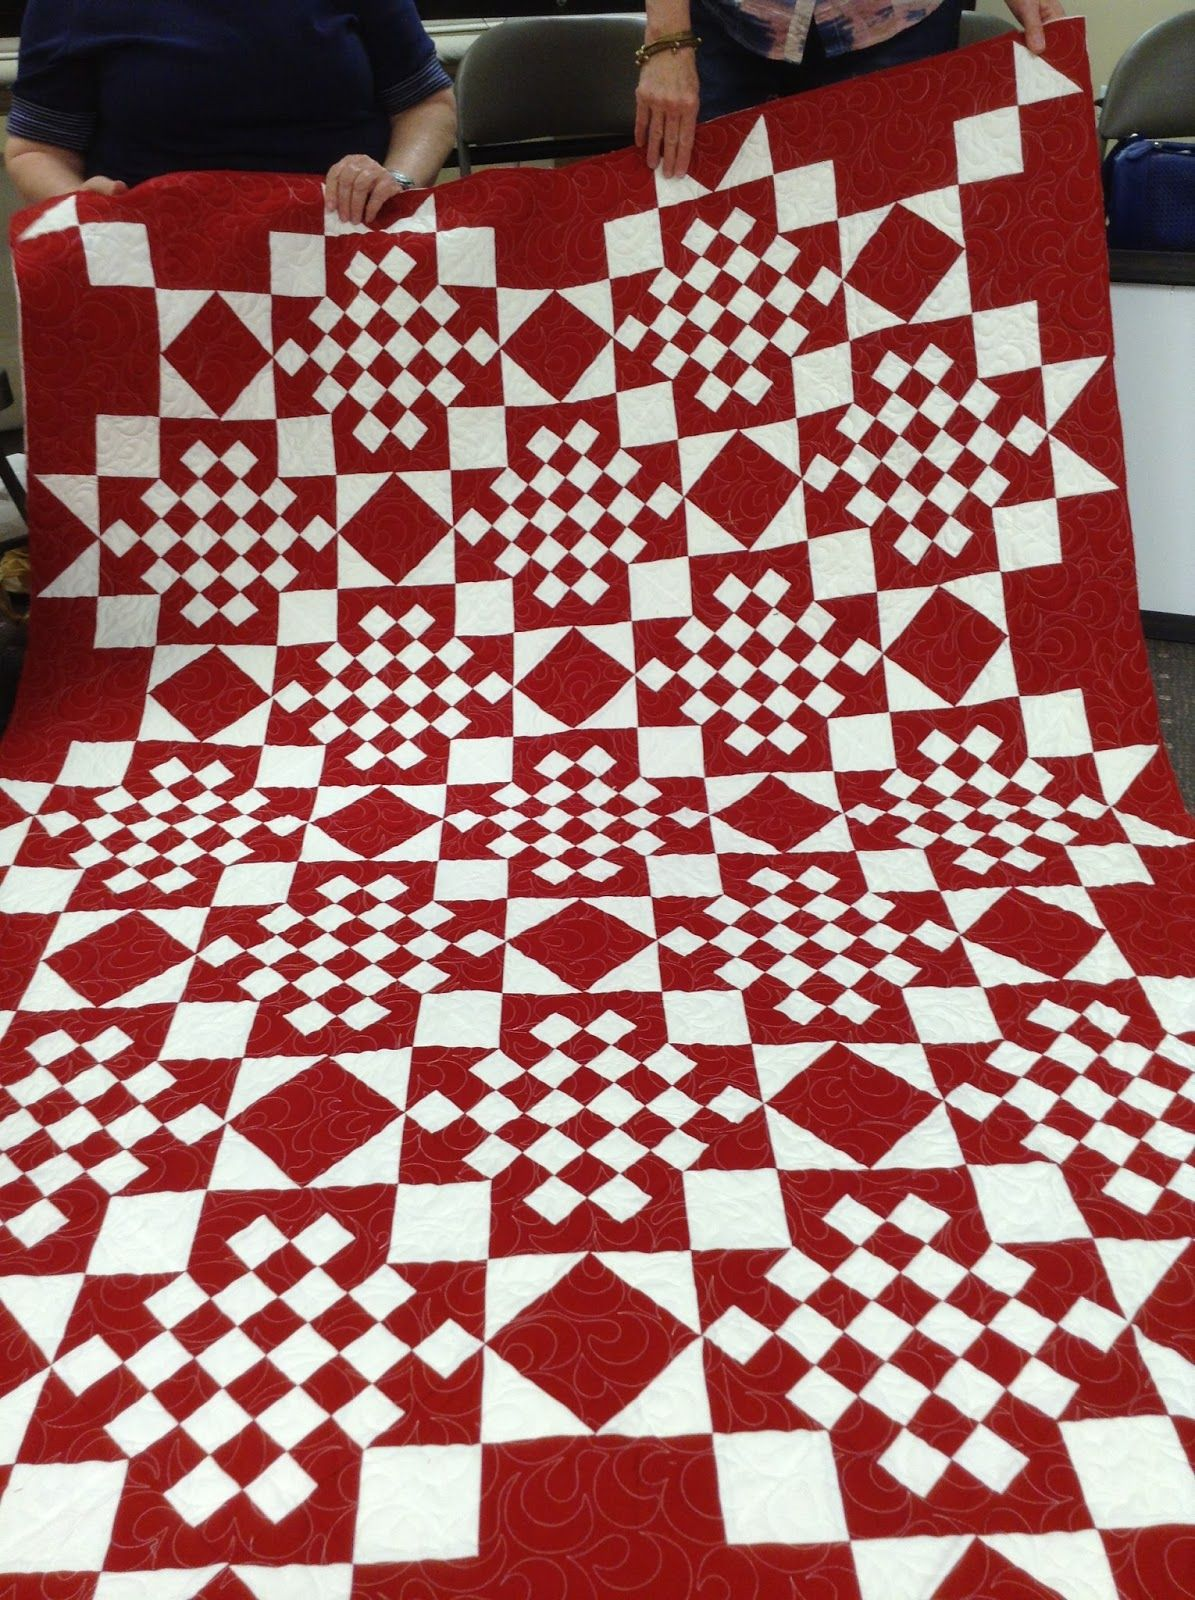 Country Traditions Quilt Shop Accuquilt wish you good health and ... : country traditions quilt shop - Adamdwight.com